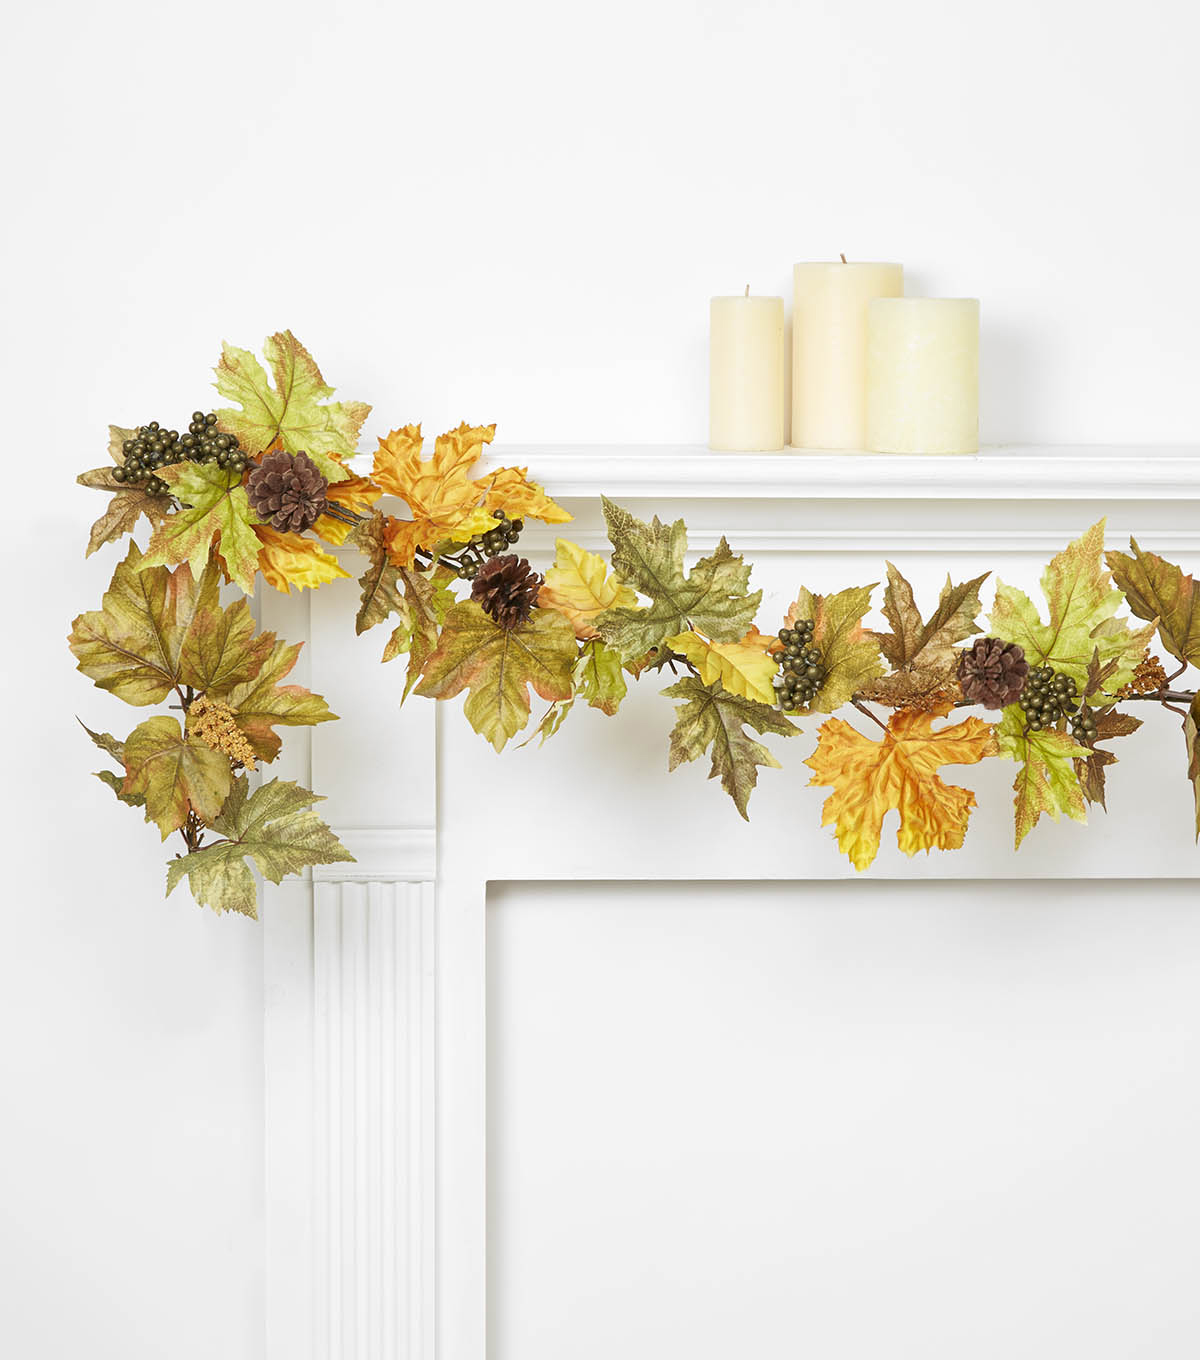 Blooming Autumn Maple Leaves With Berry Garland